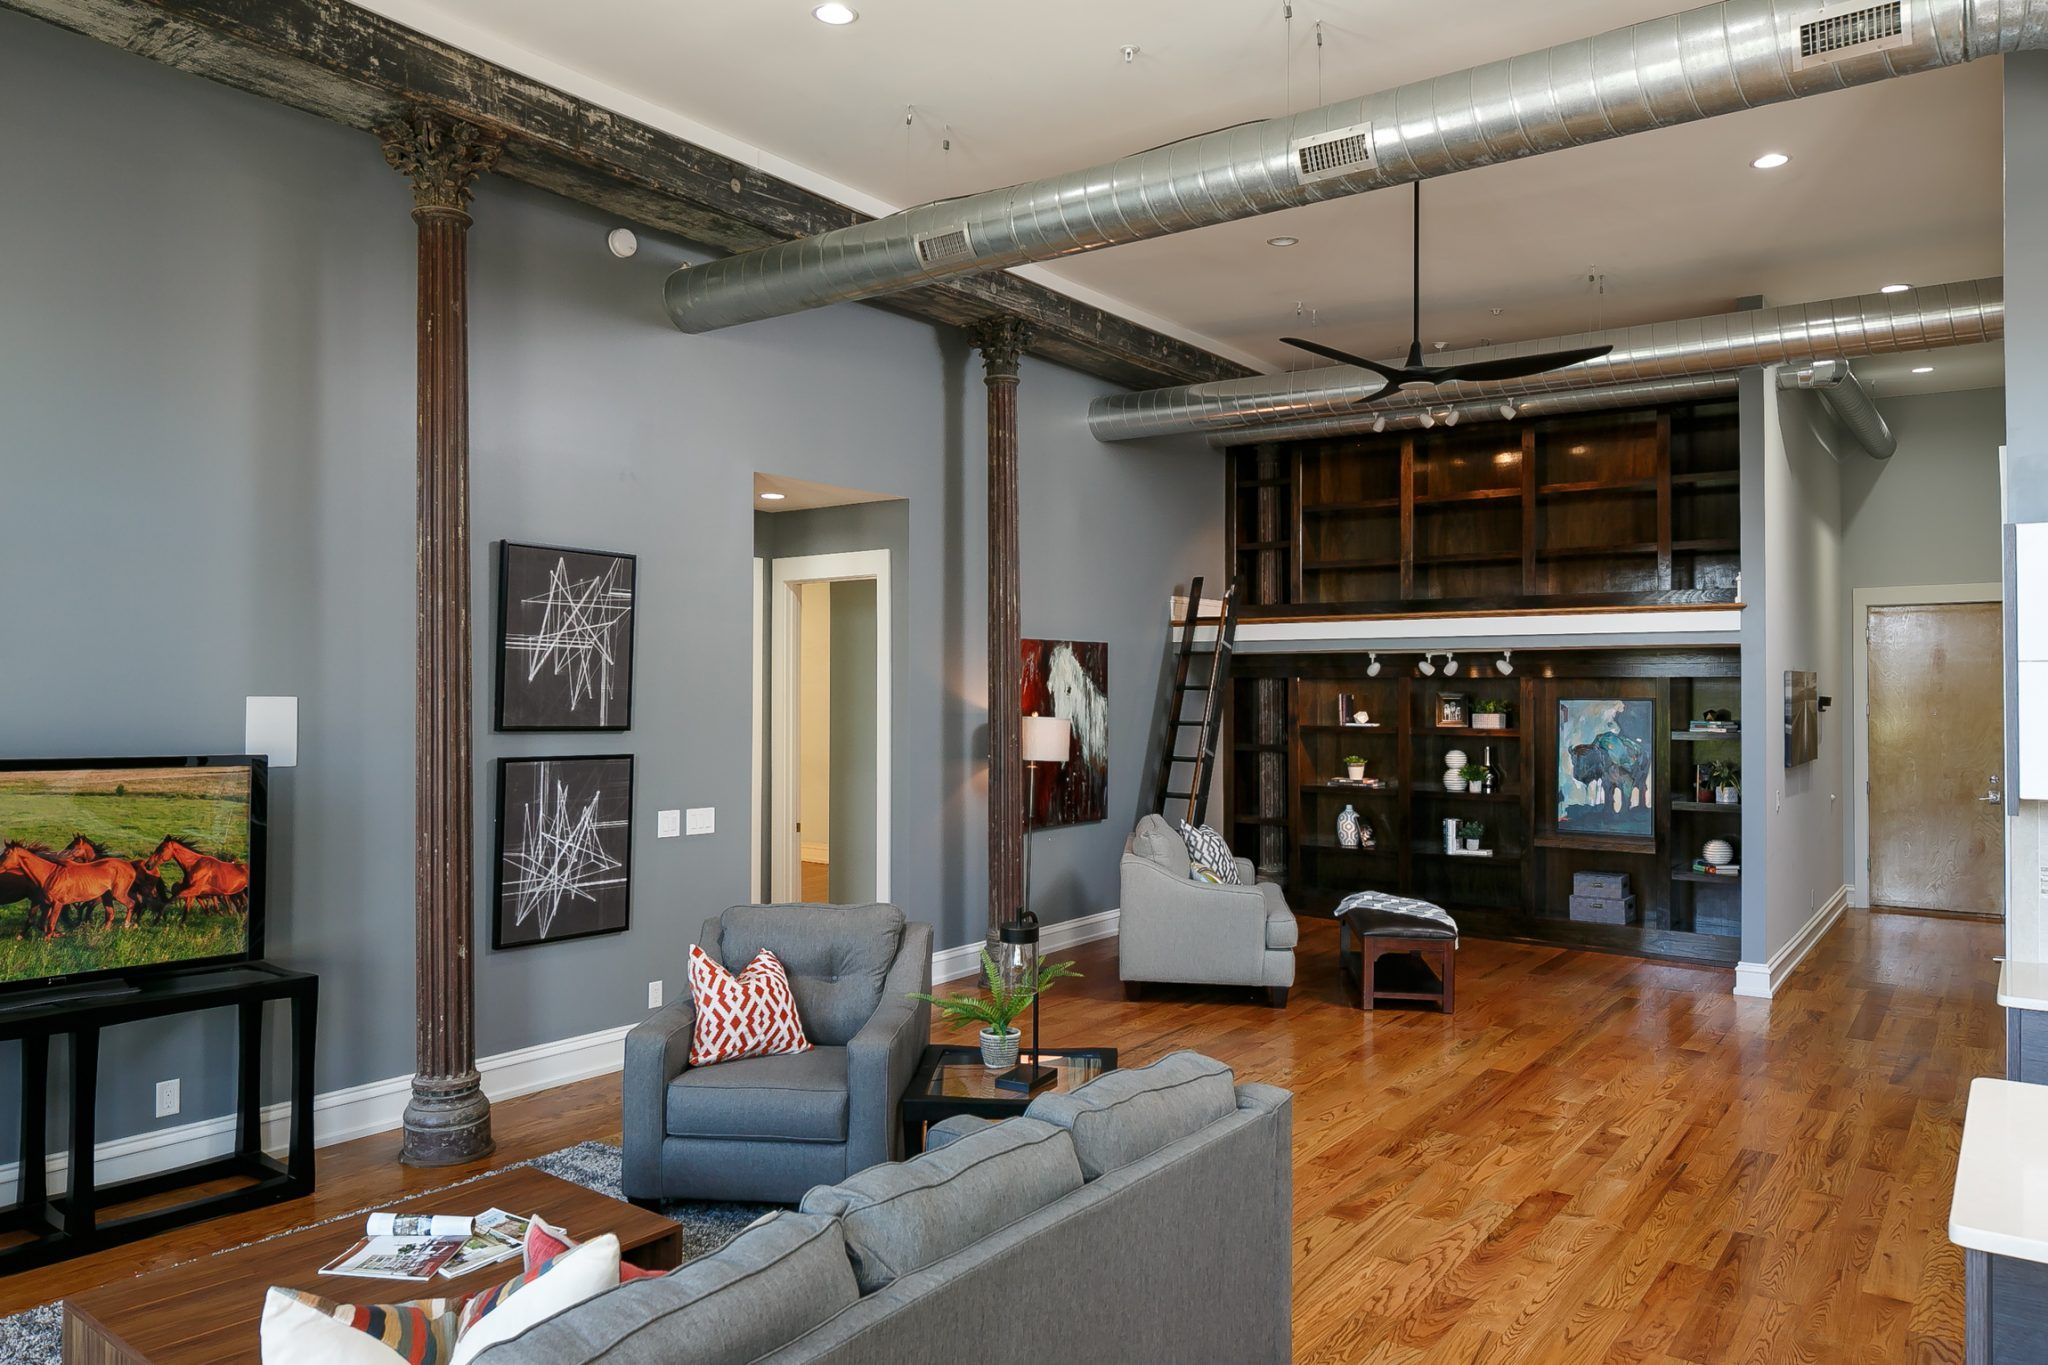 Louisville Interior Designer, Louisville Renovation Designer, Louisville Home Staging, Urban Loft, Industrial Loft, Exposed Brick, Hardwood Flooring, Modern Decor, Views of Downtown, Falls City Condo, Cool Color Scheme, Staging Sells